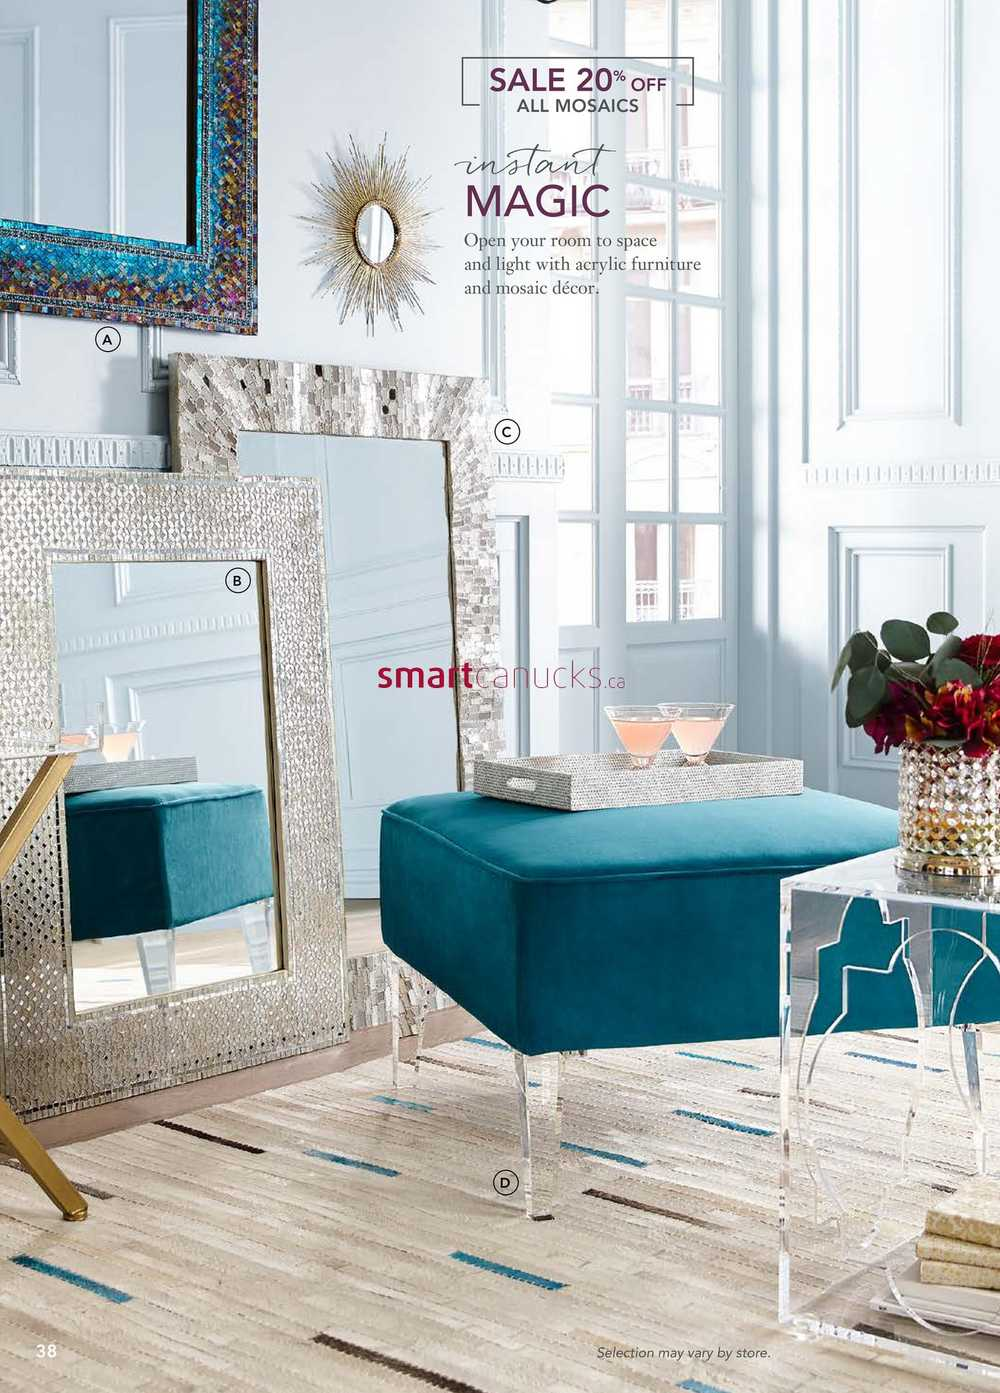 Pier 1 Imports Flyer October 2 to 29